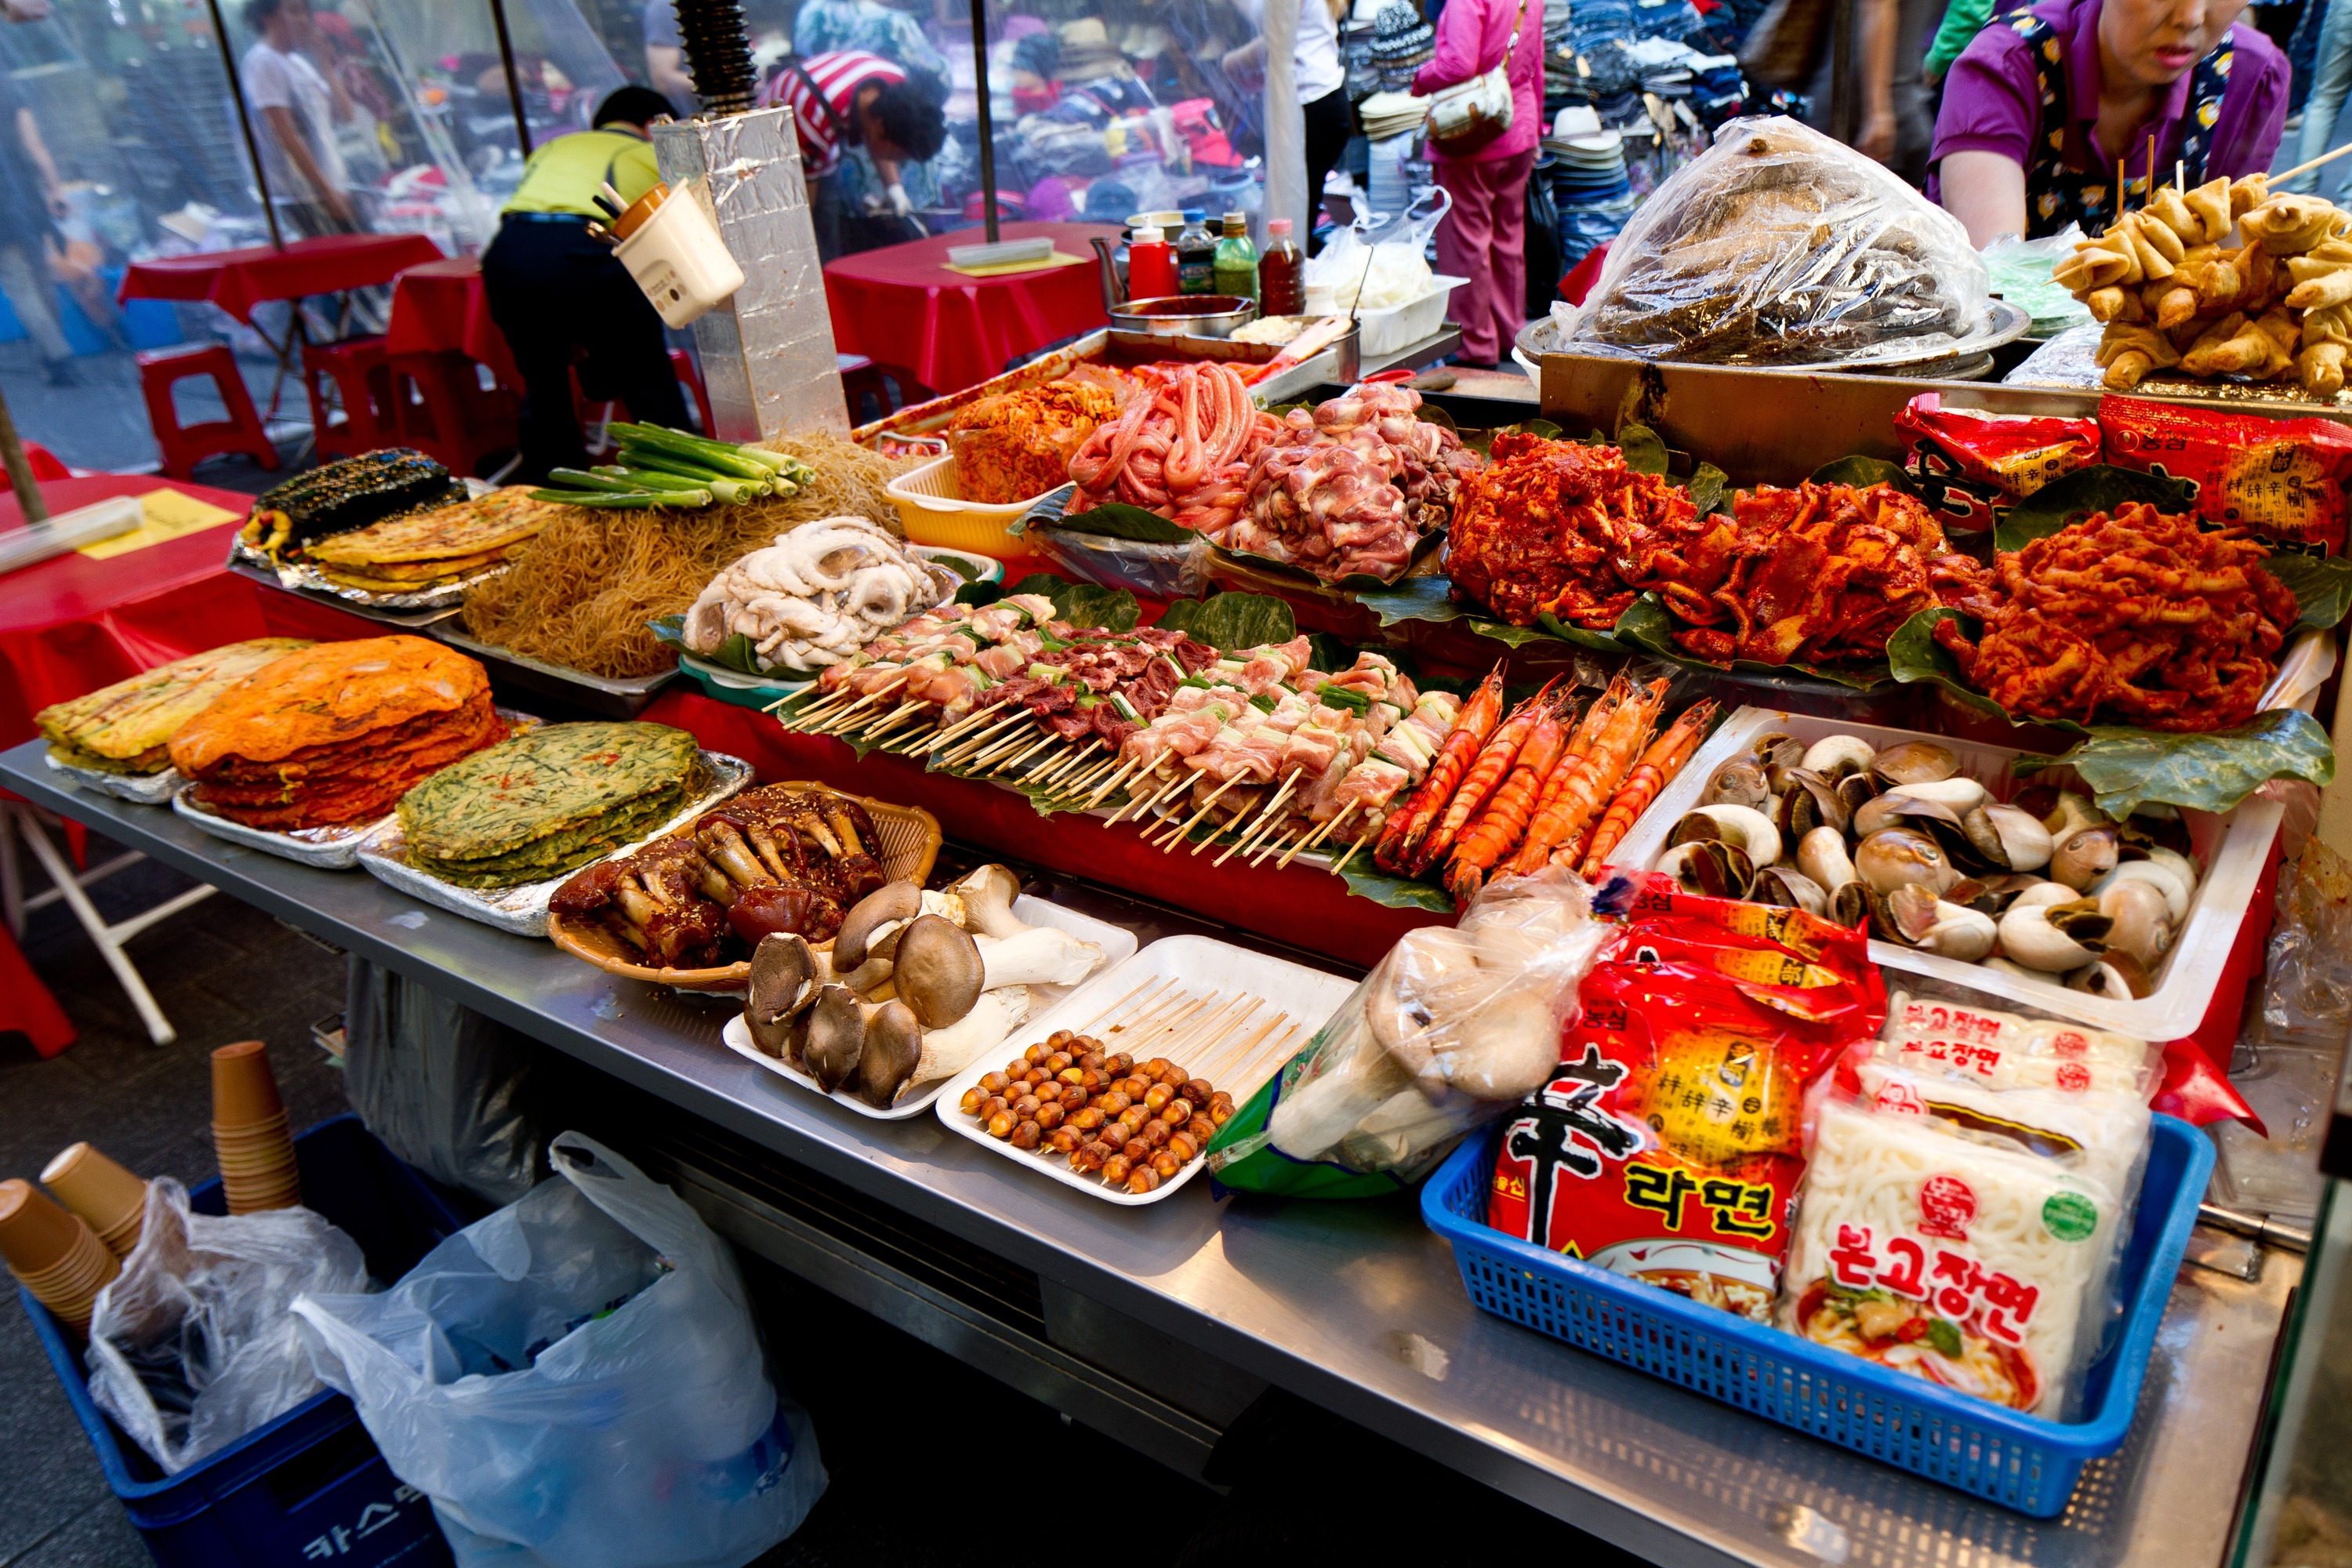 12am - 2pm ▶ Fill your stomach with street foods at Tongin Market